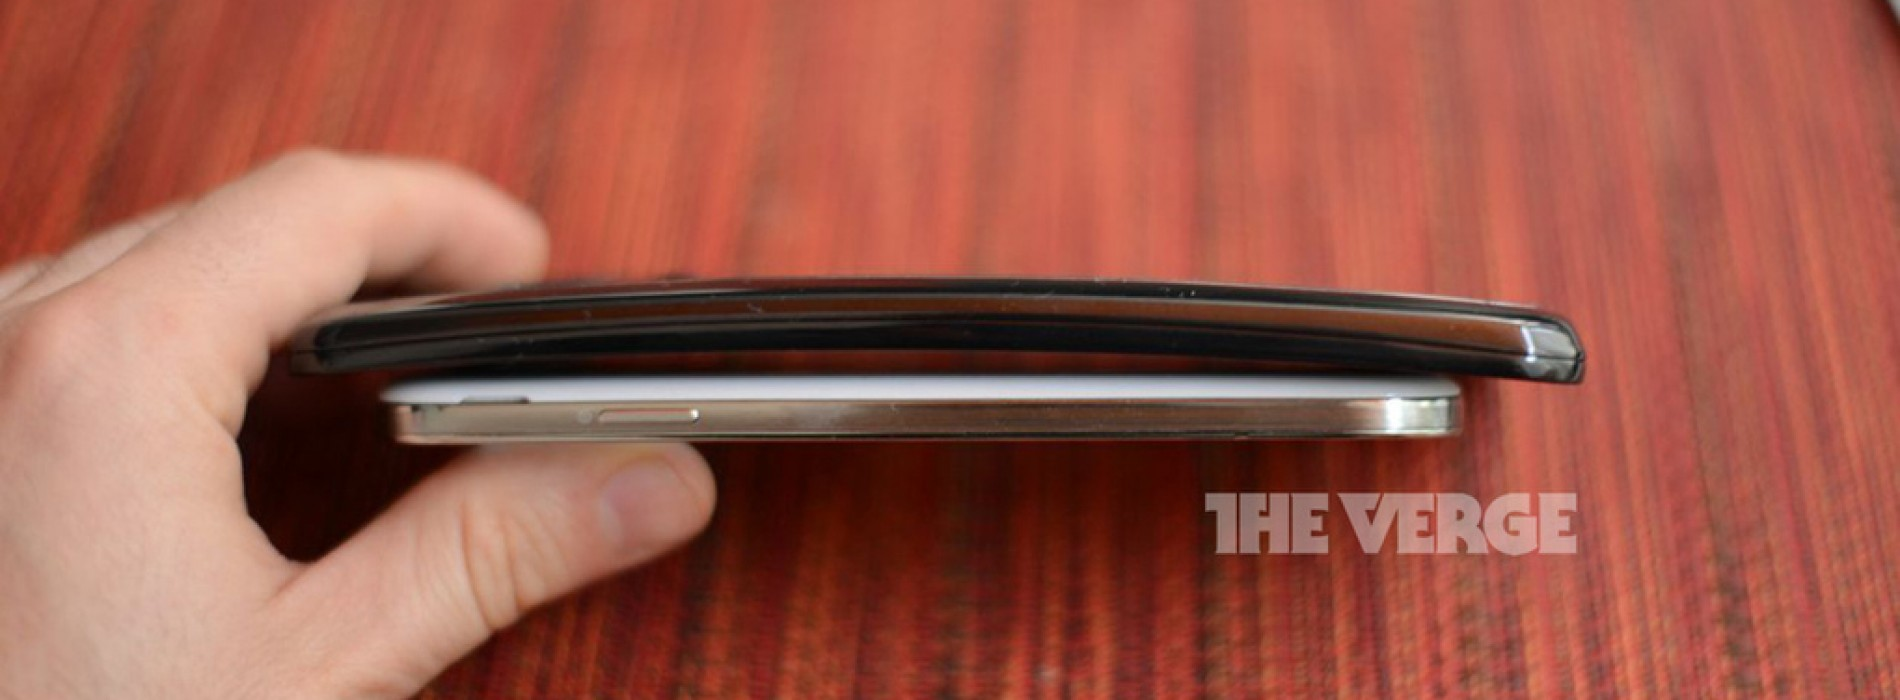 LG's curved G Flex emerges in early pictures